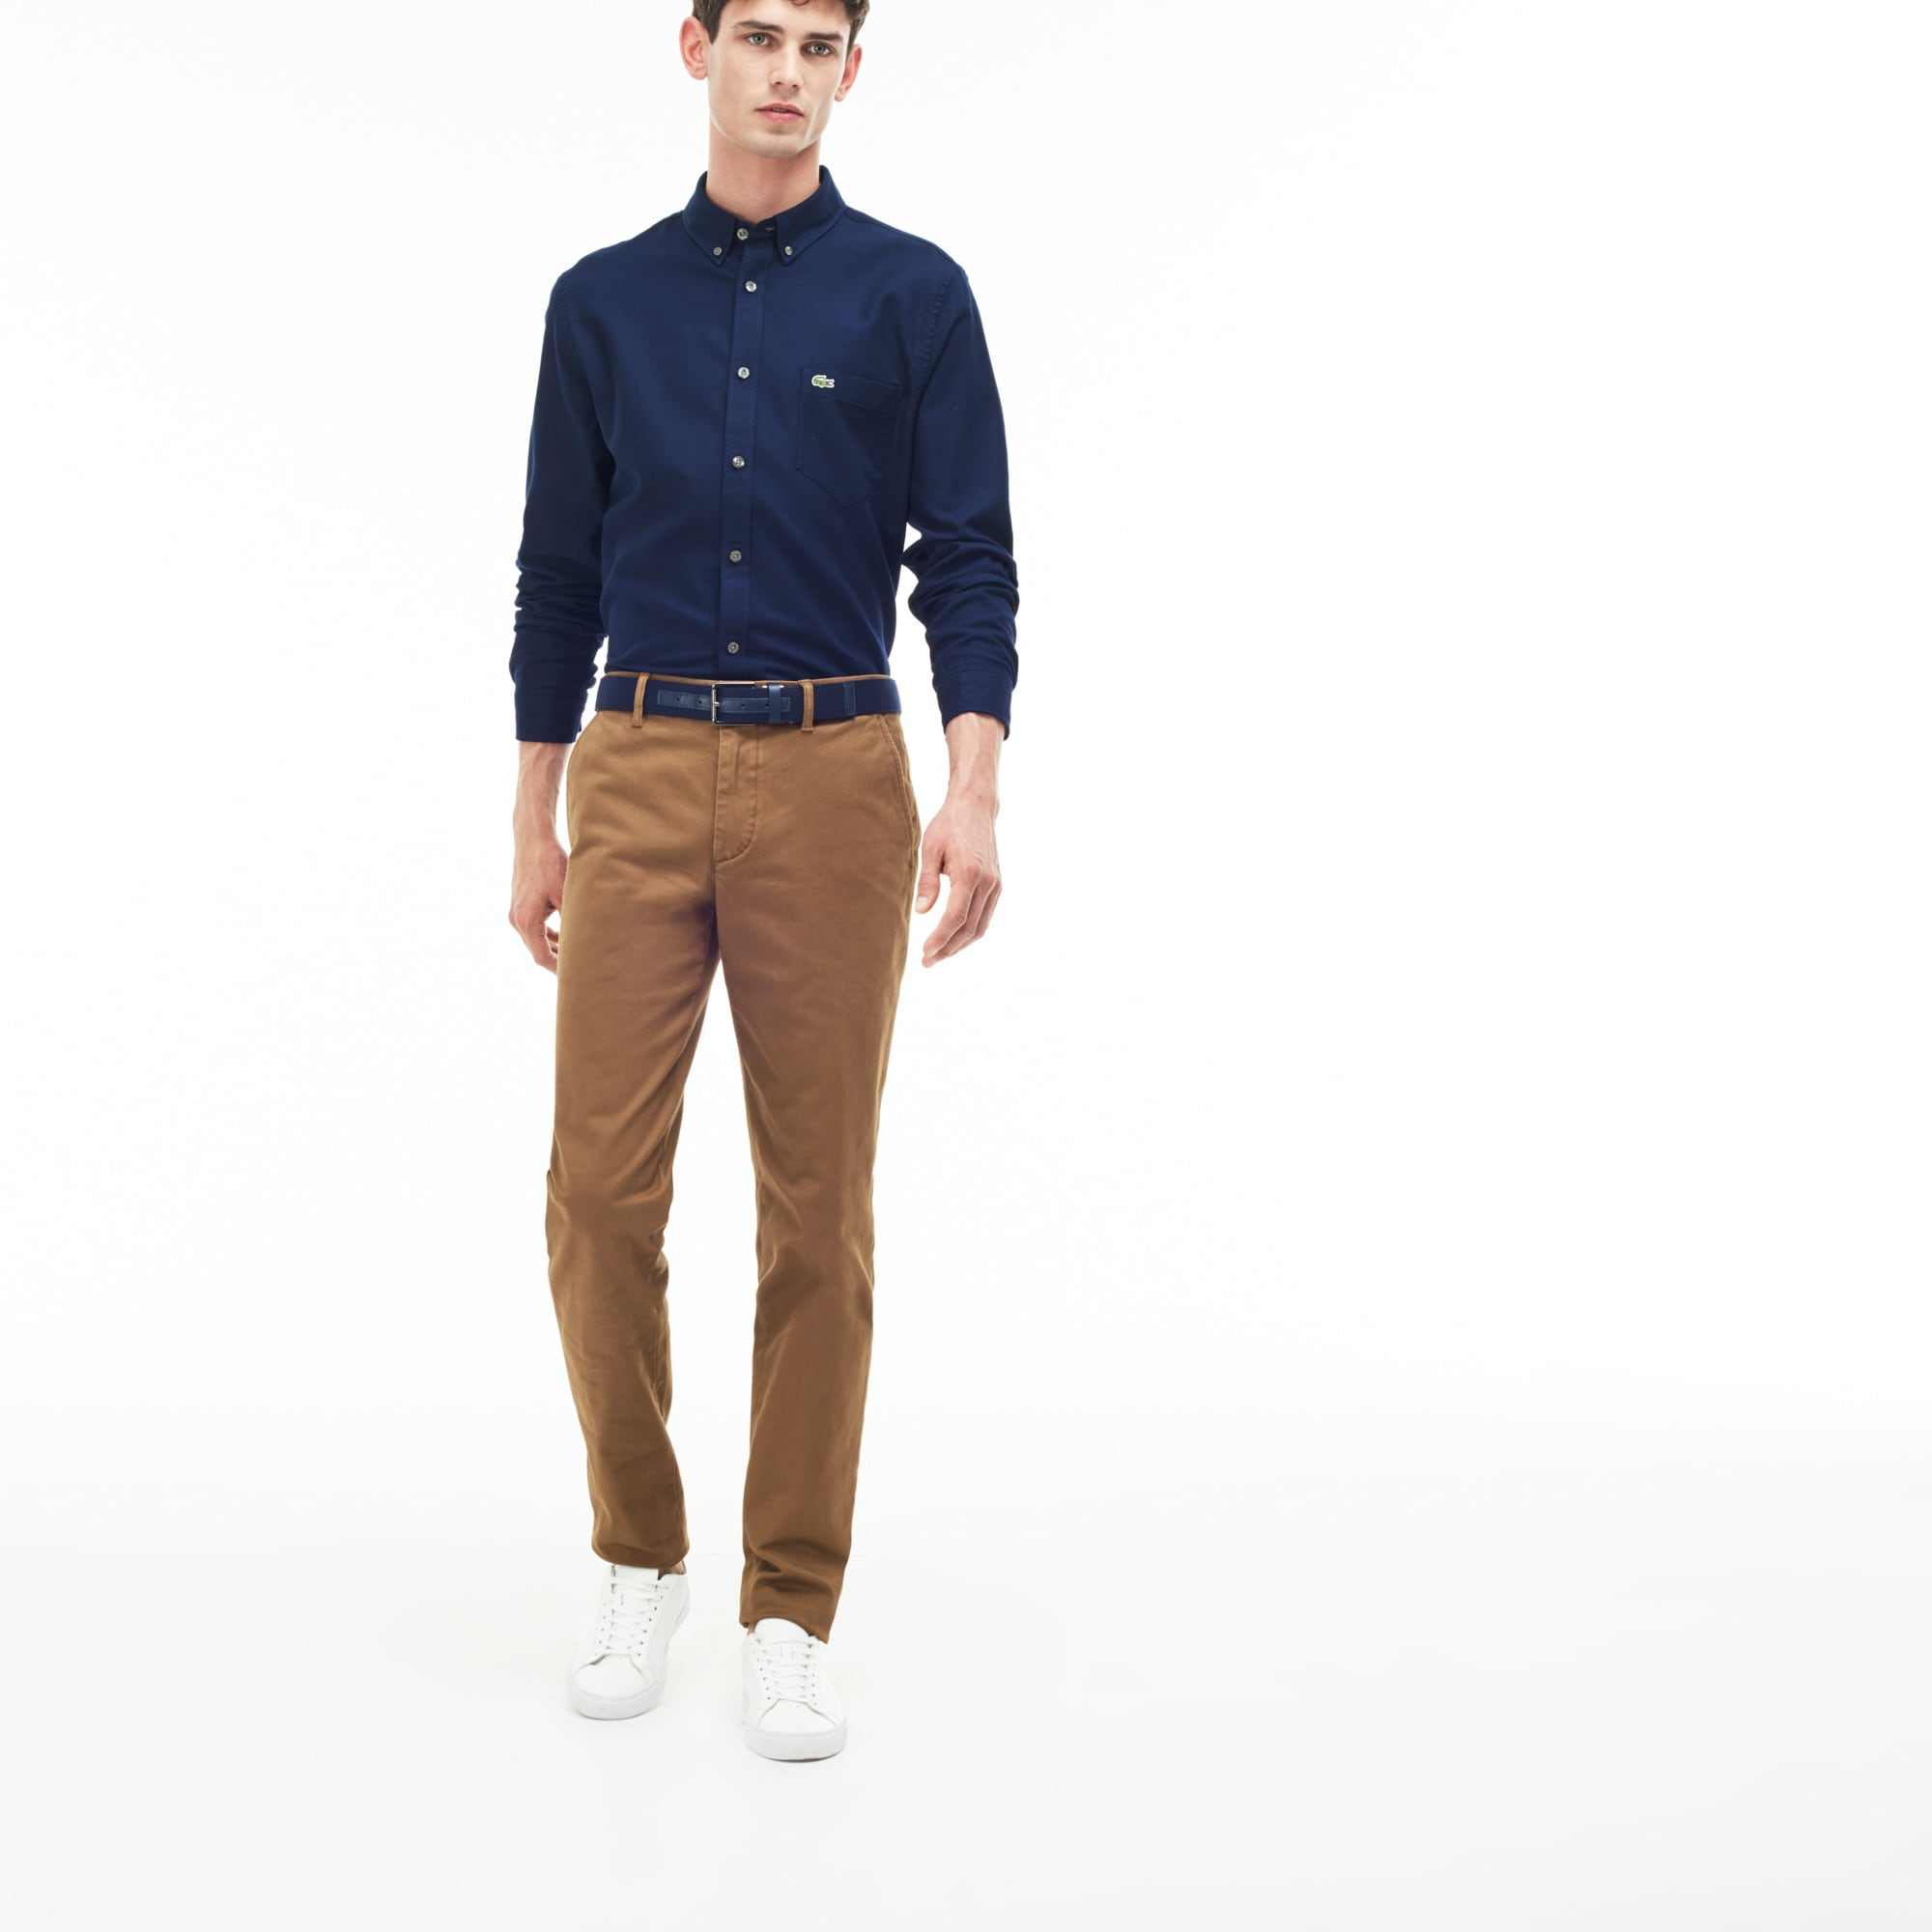 Pantalon chino slim fit en gabardine stretch unie